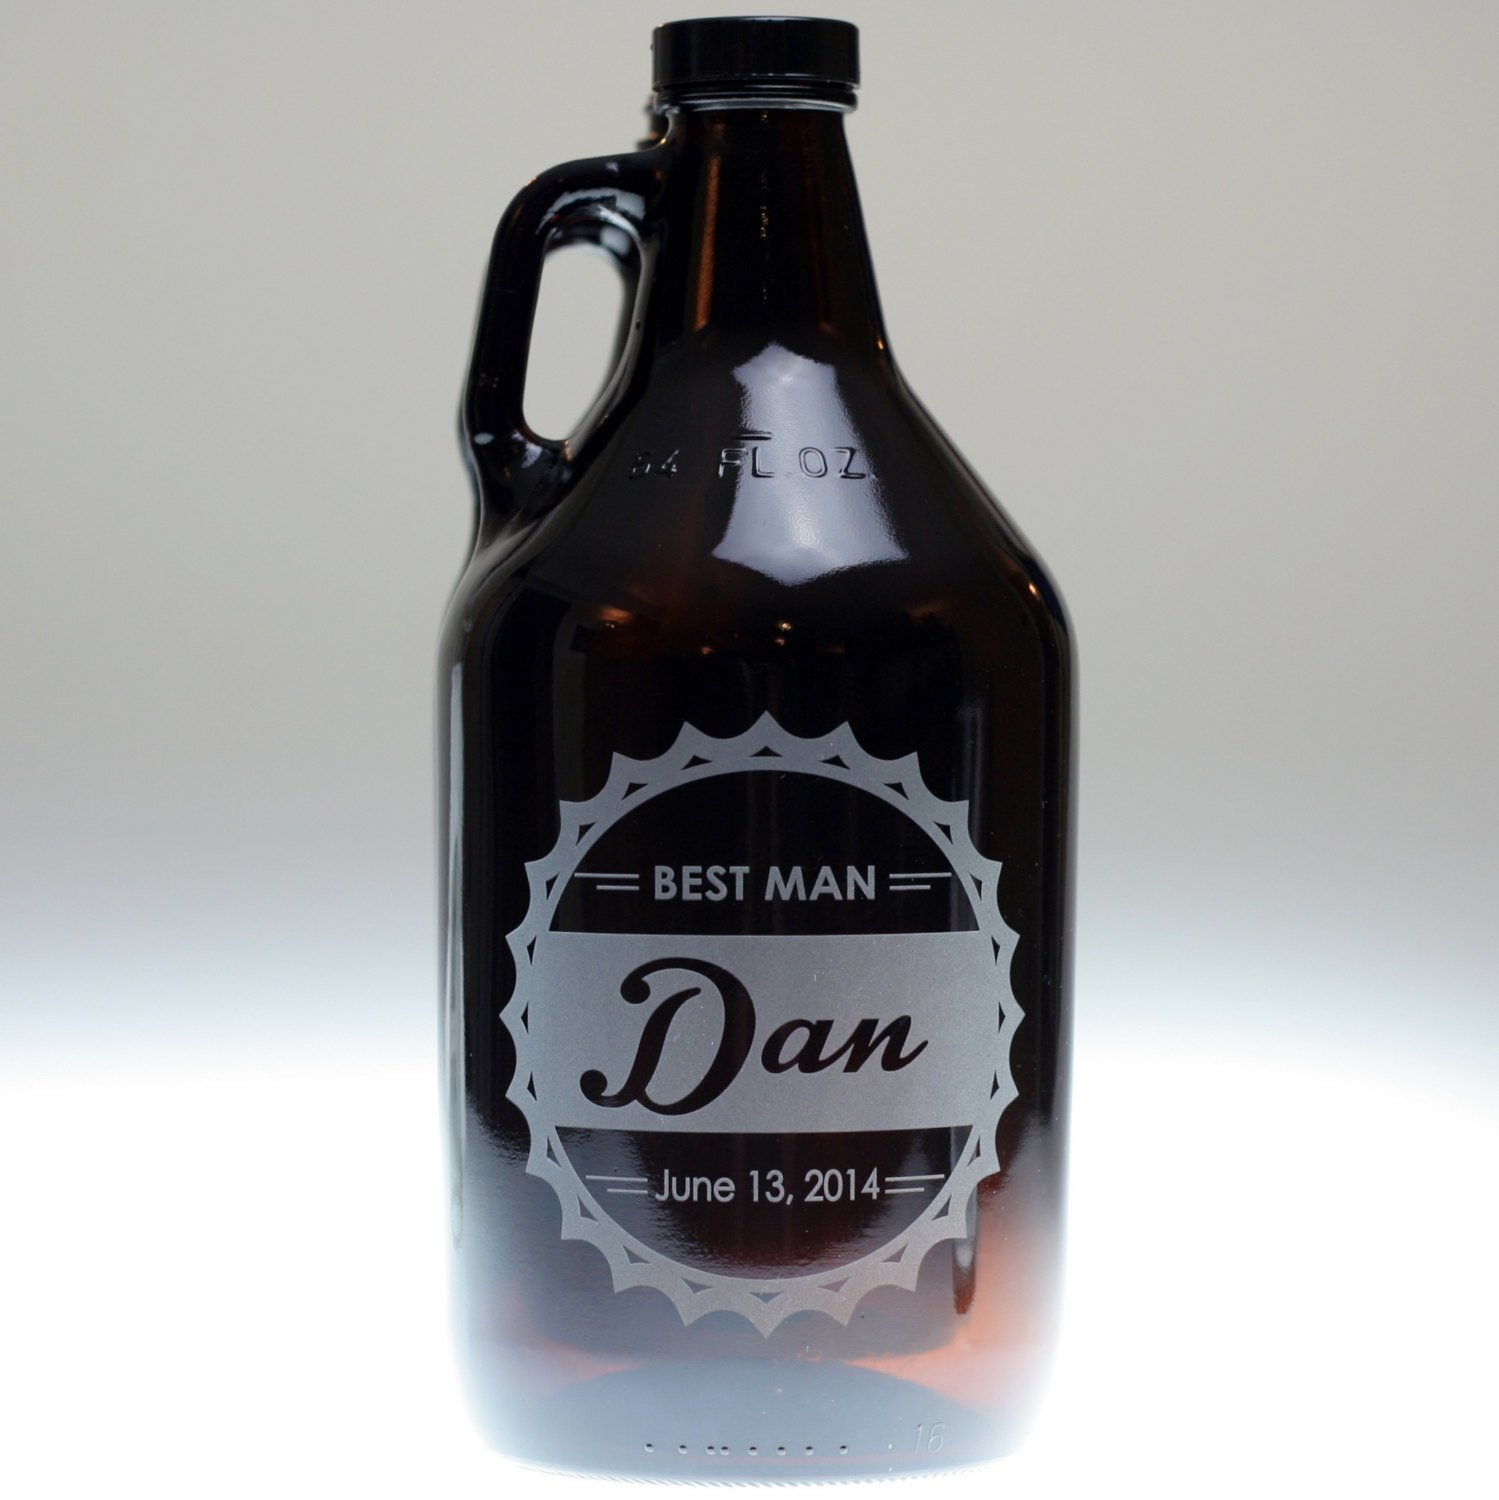 Personalized Engraved Bottle Cap Theme Groomsman Beer Growler Glass Set | Custom Groomsmen Gift by Glass Blasted (Image #2)